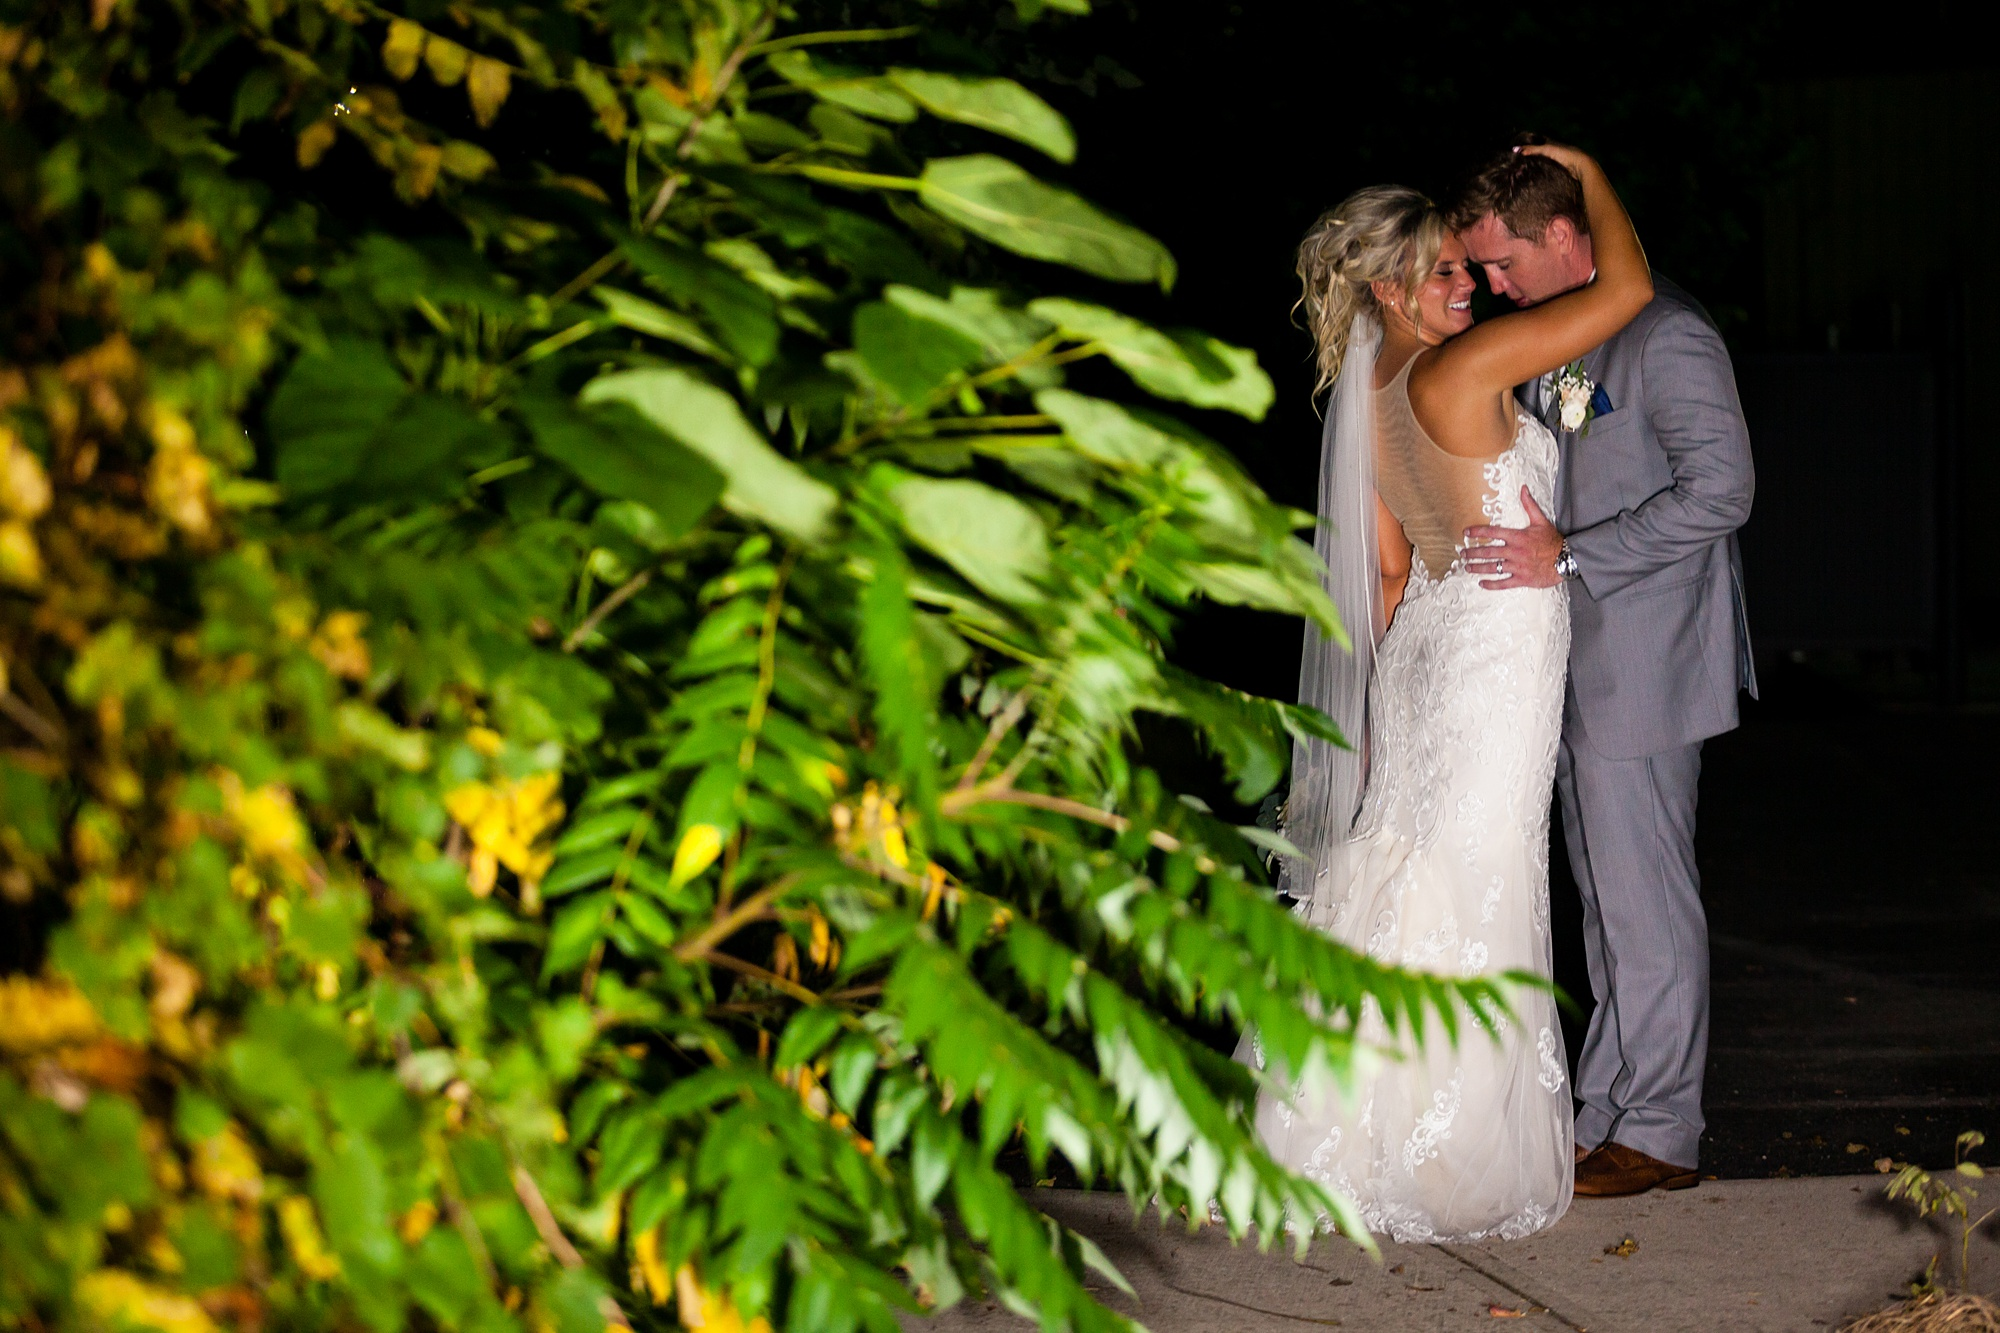 Brandon_Shafer_Photography_Amber_Ryan_Wedding_0127.jpg